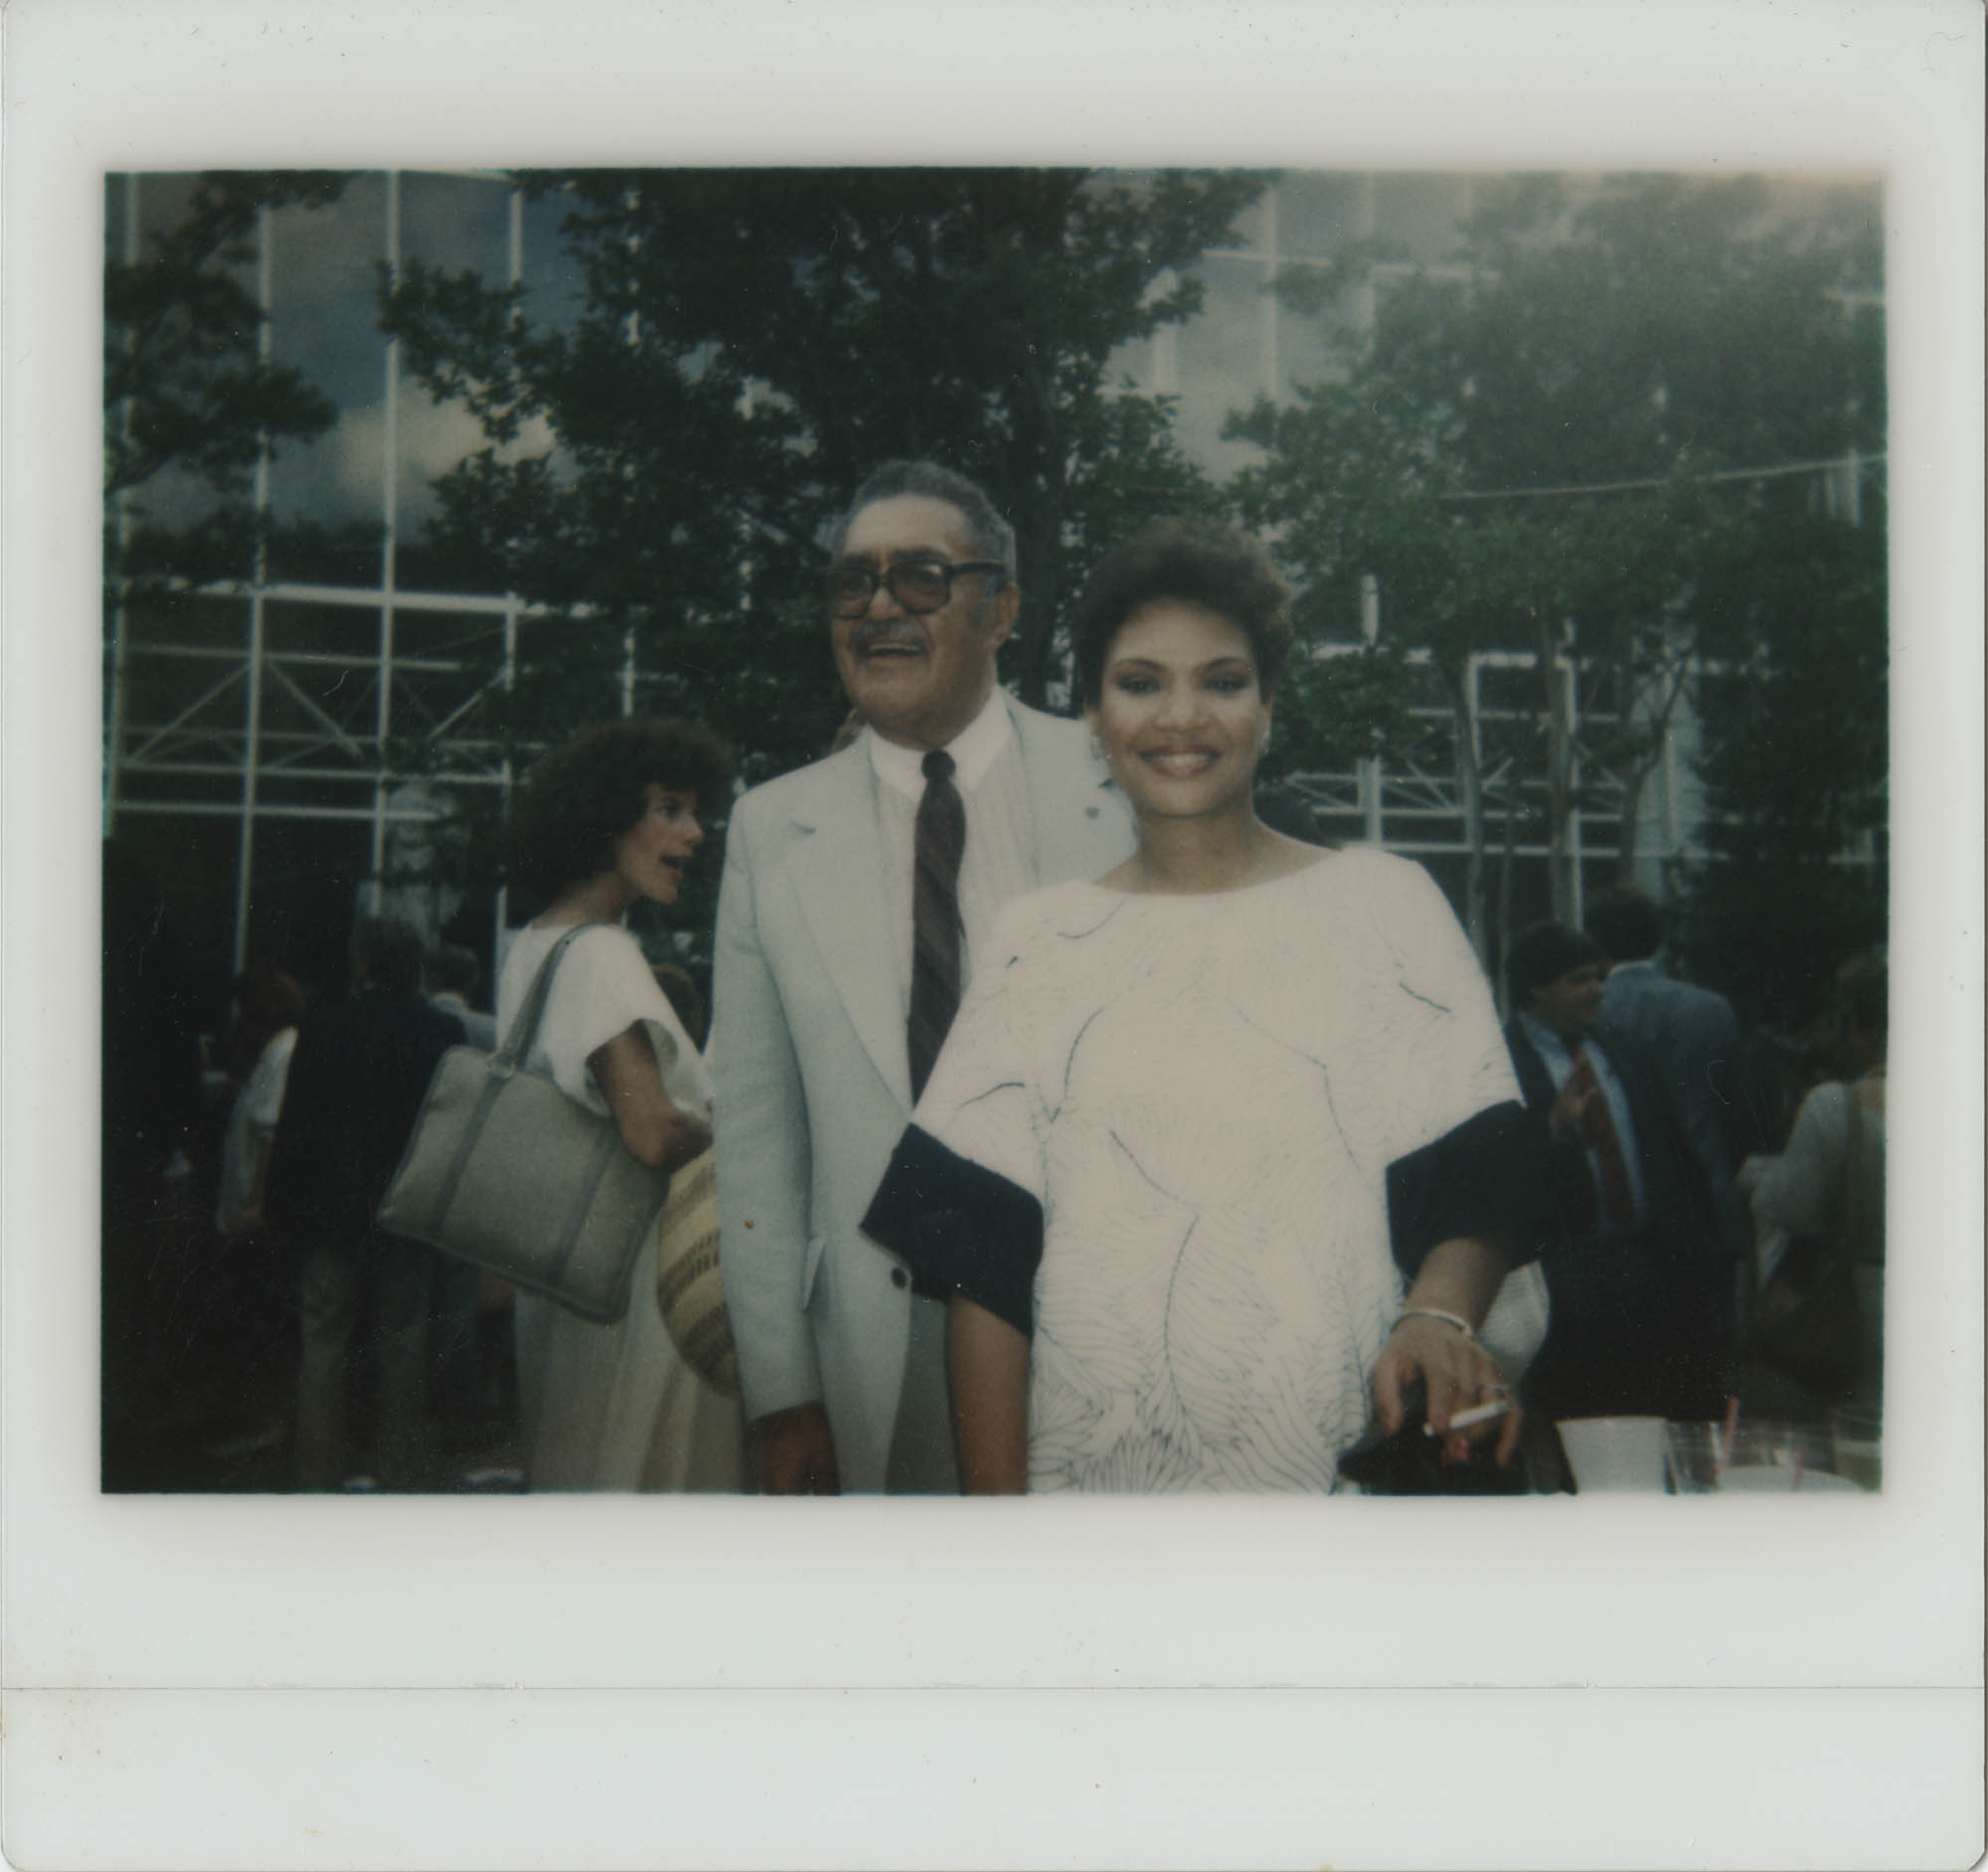 Photograph of J. Arthur Brown and an Unidentified Woman